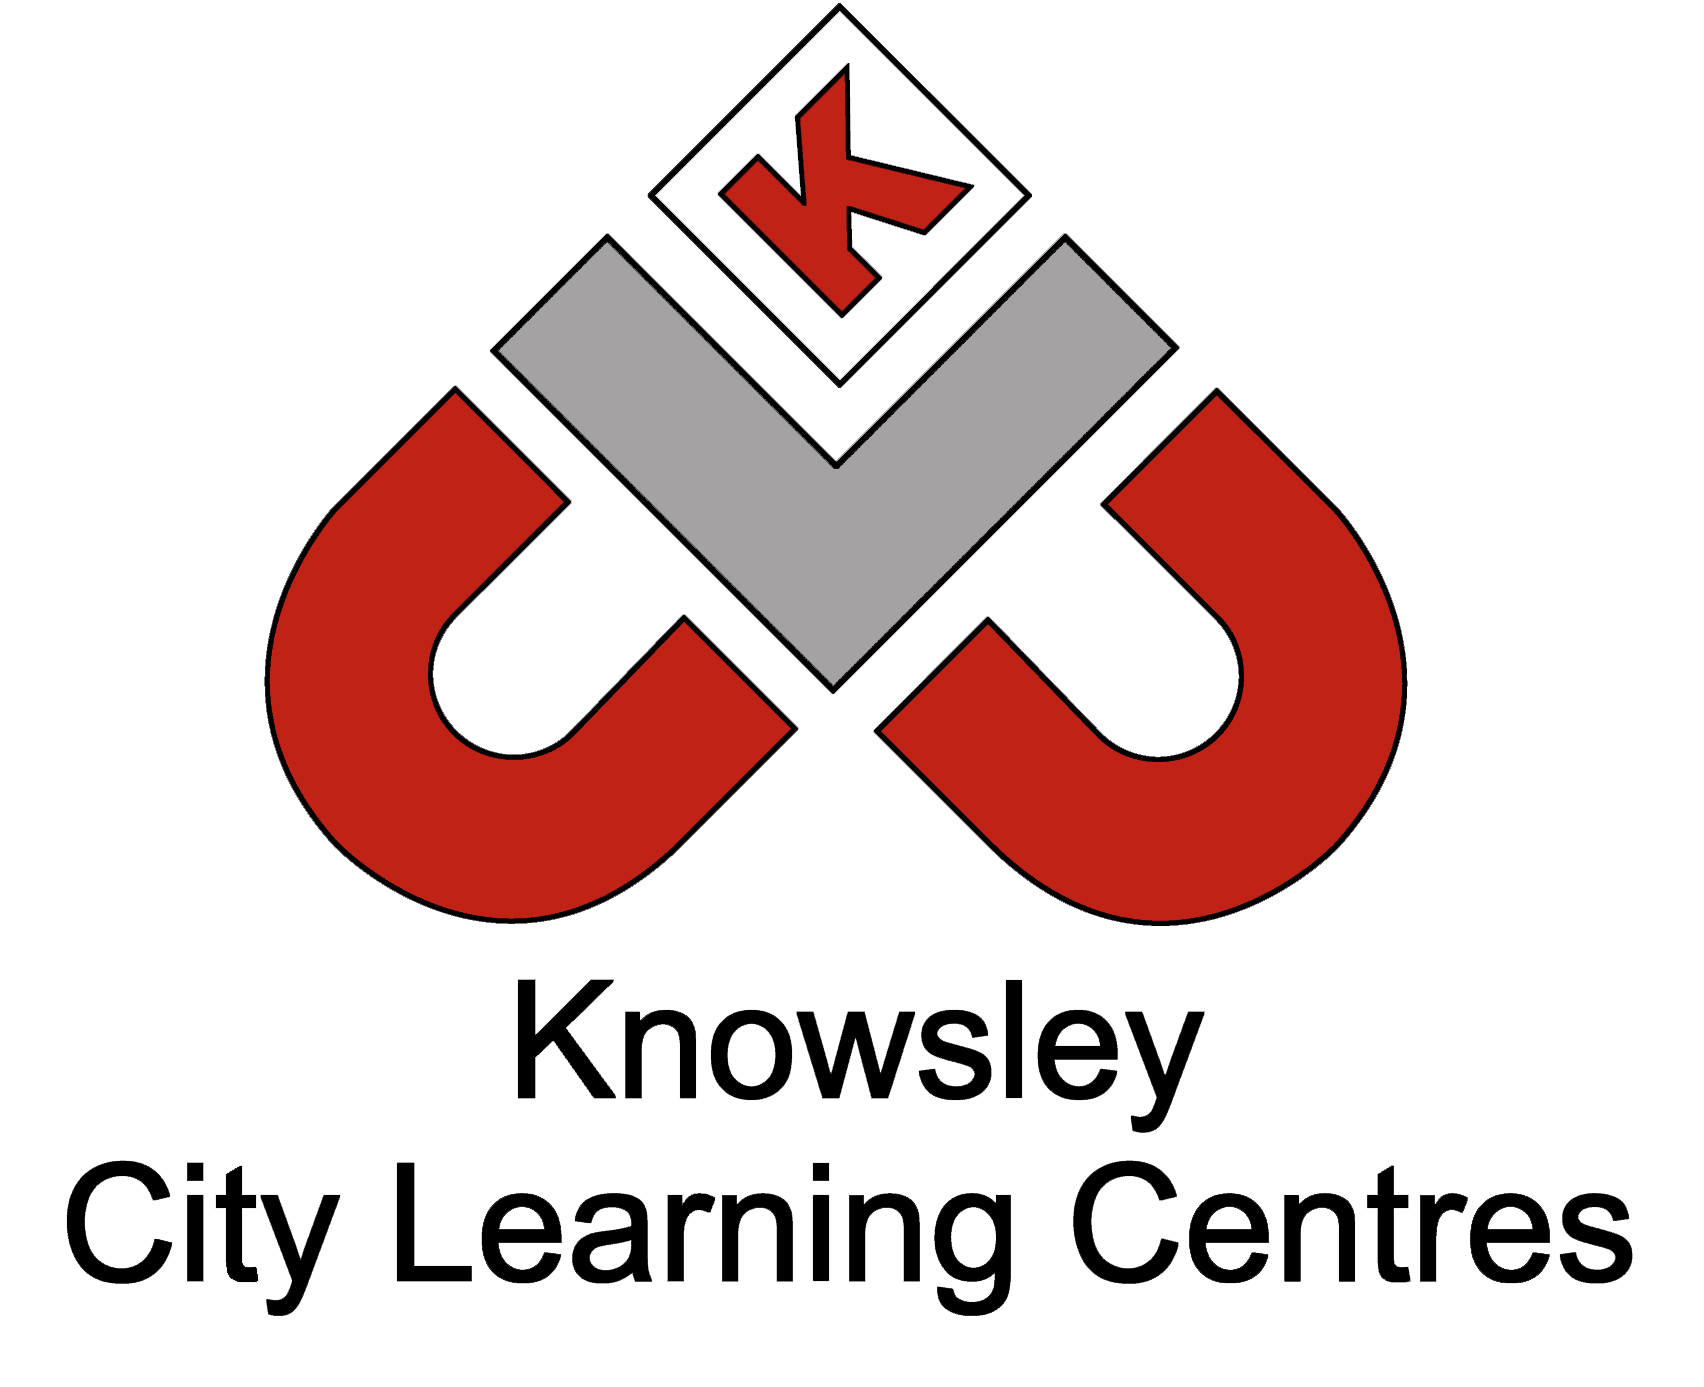 Knowsley City Learning Centres